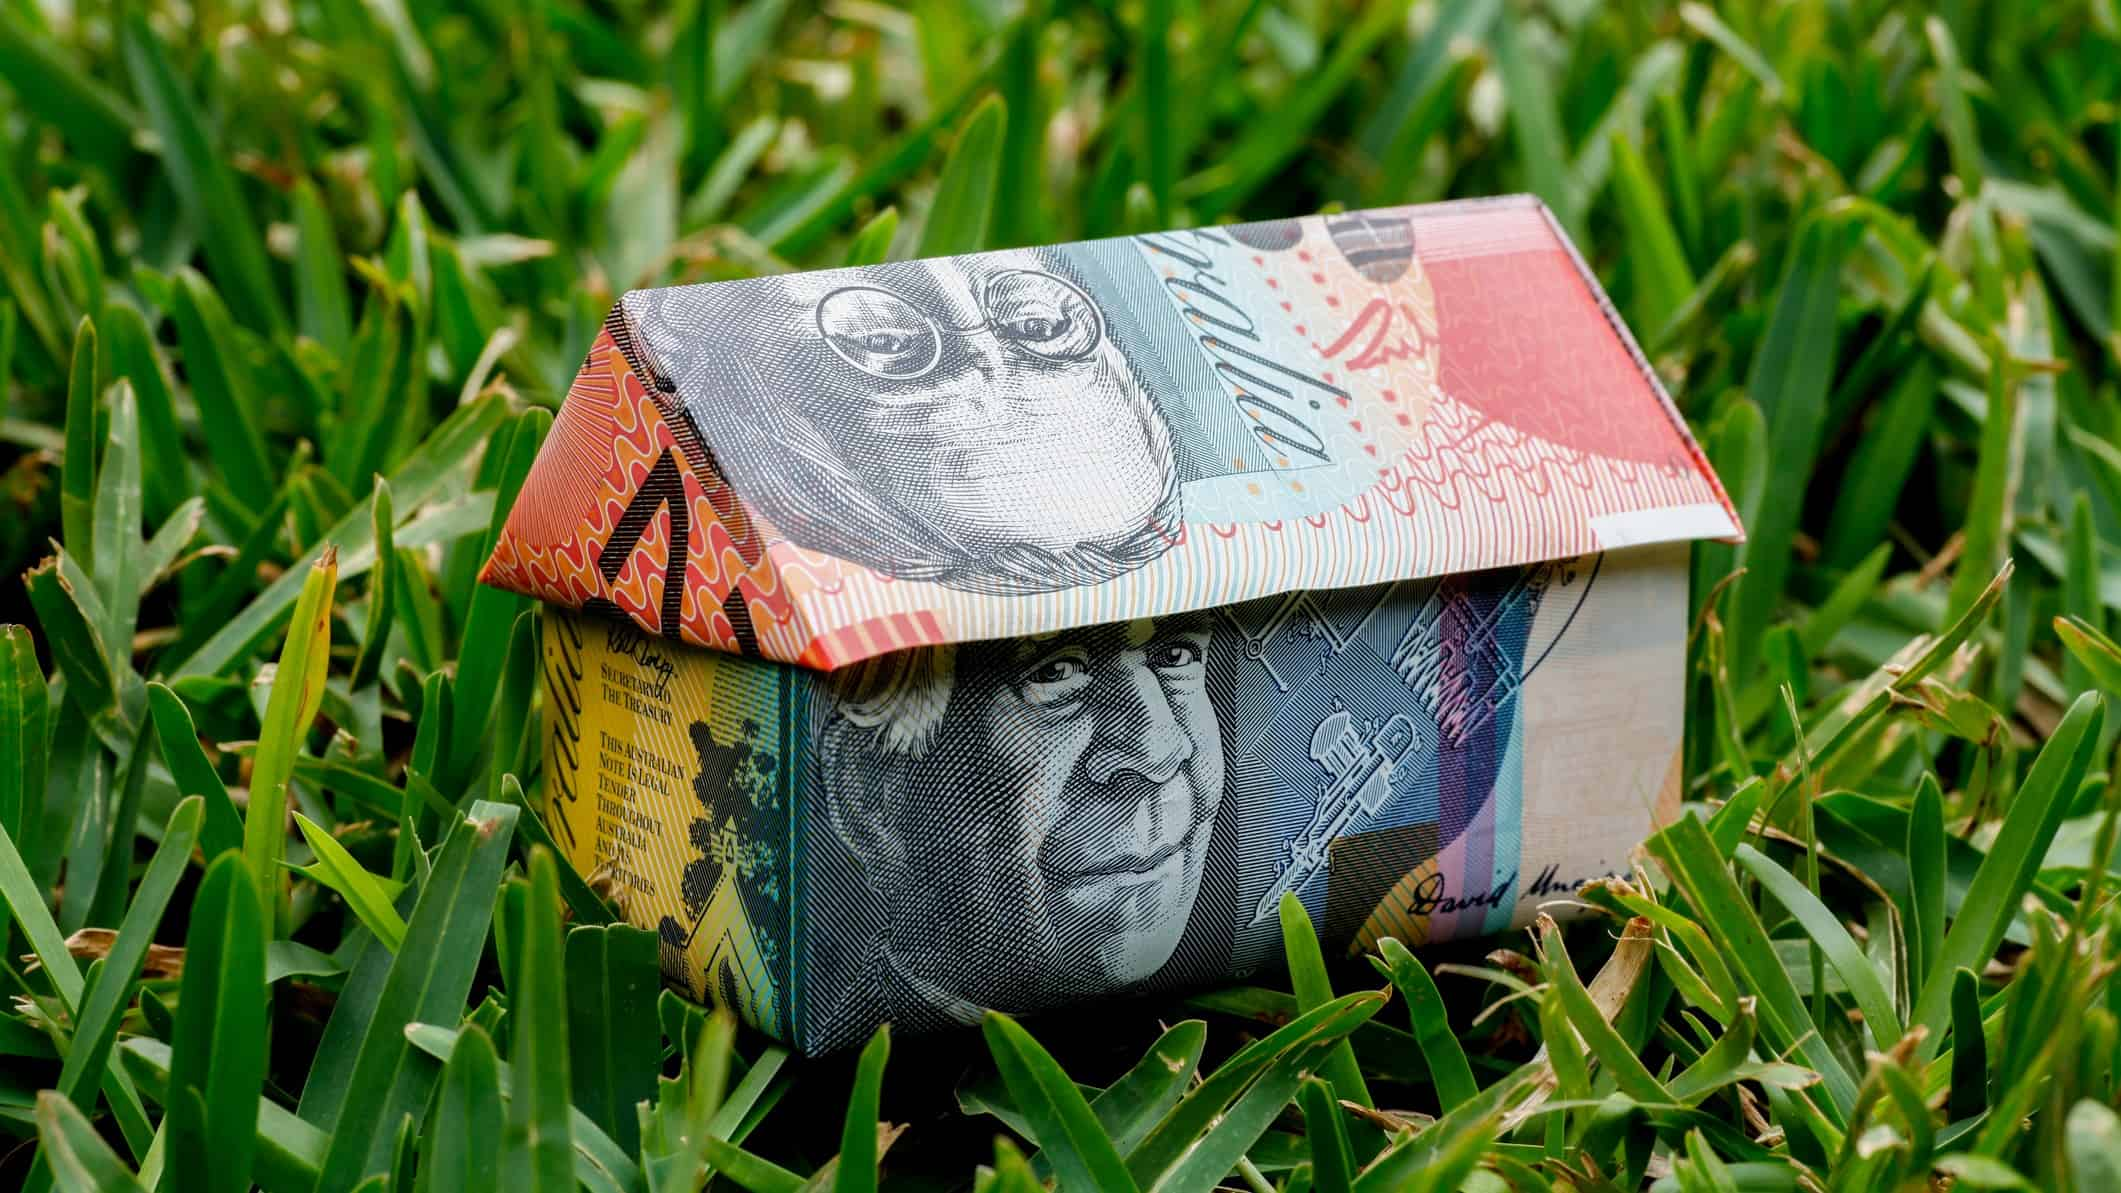 miniature building made from australian currency notes representing asx bank shares